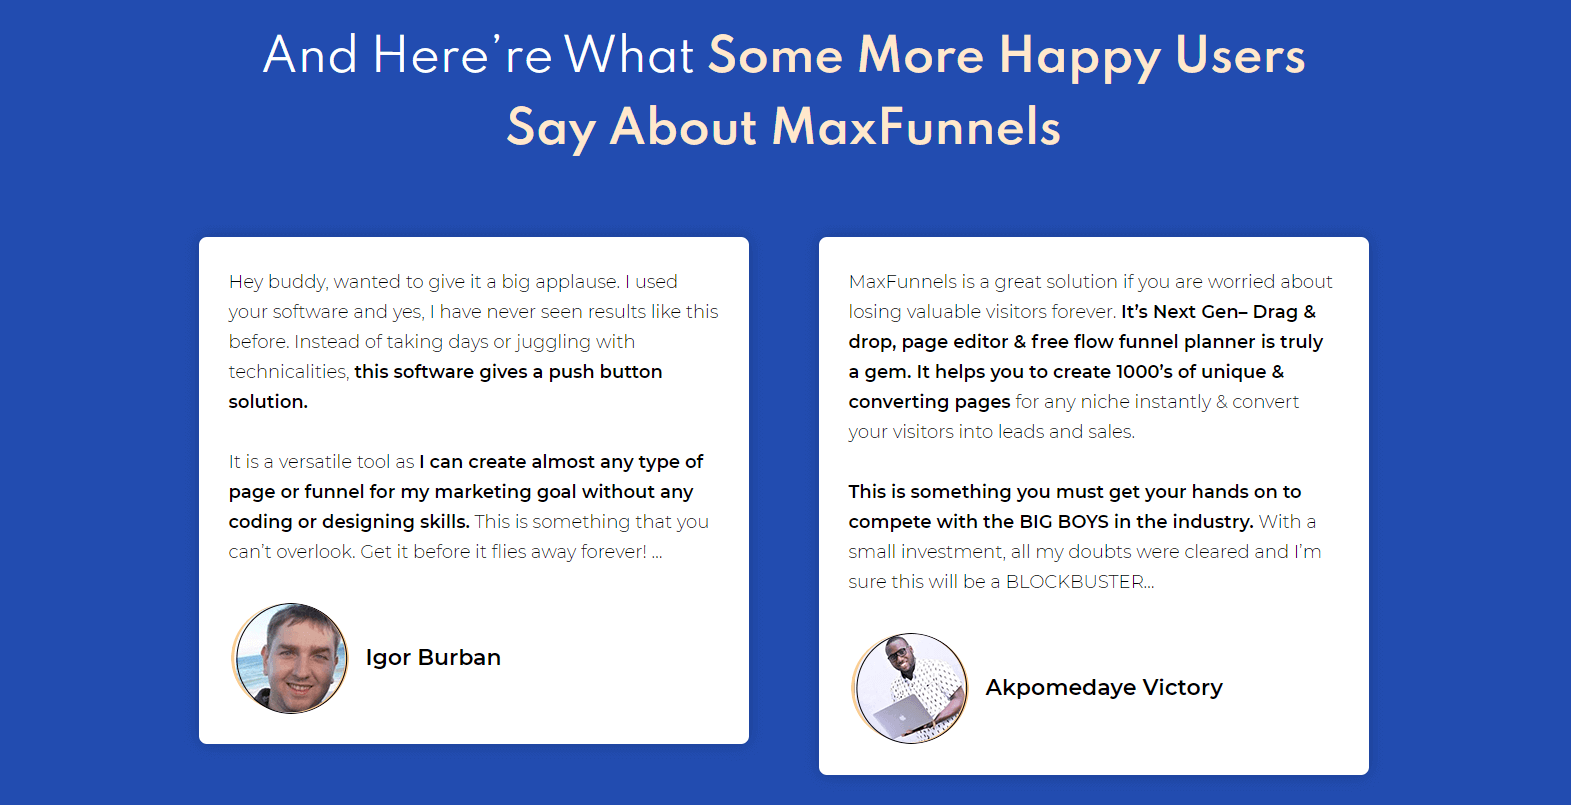 MaxFunnel-2-Comment-2